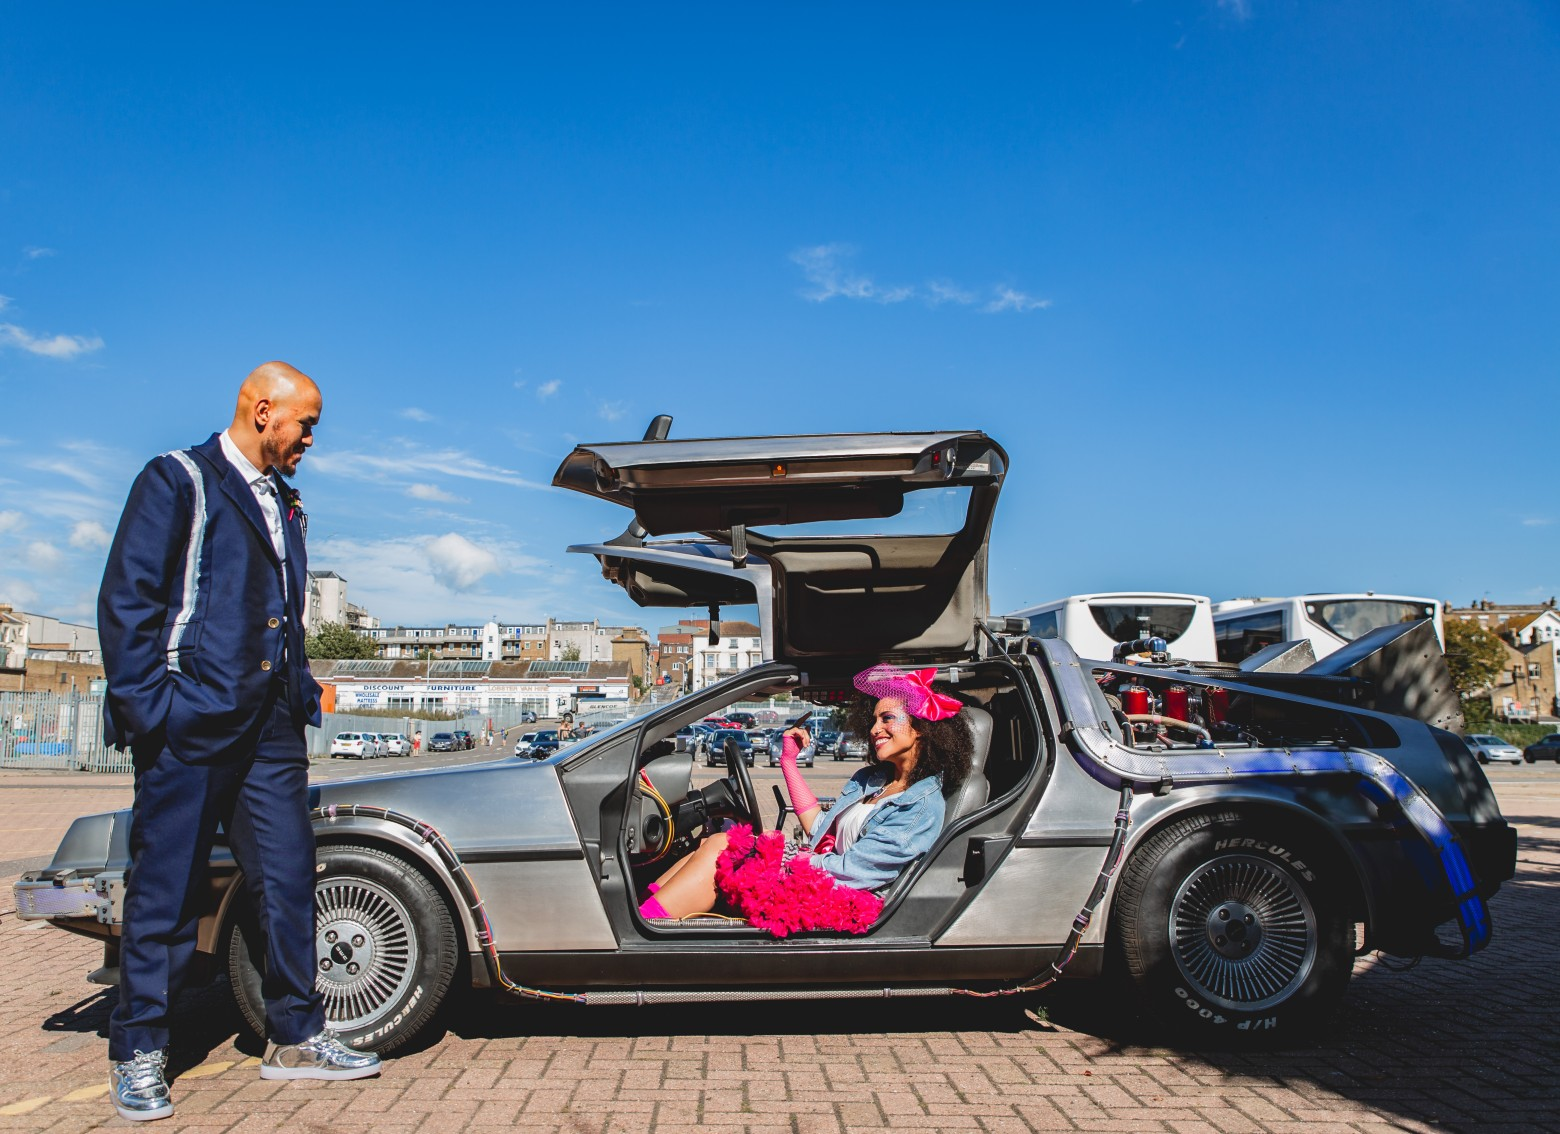 delorean car hire - back to the future wedding - 80s themed wedding